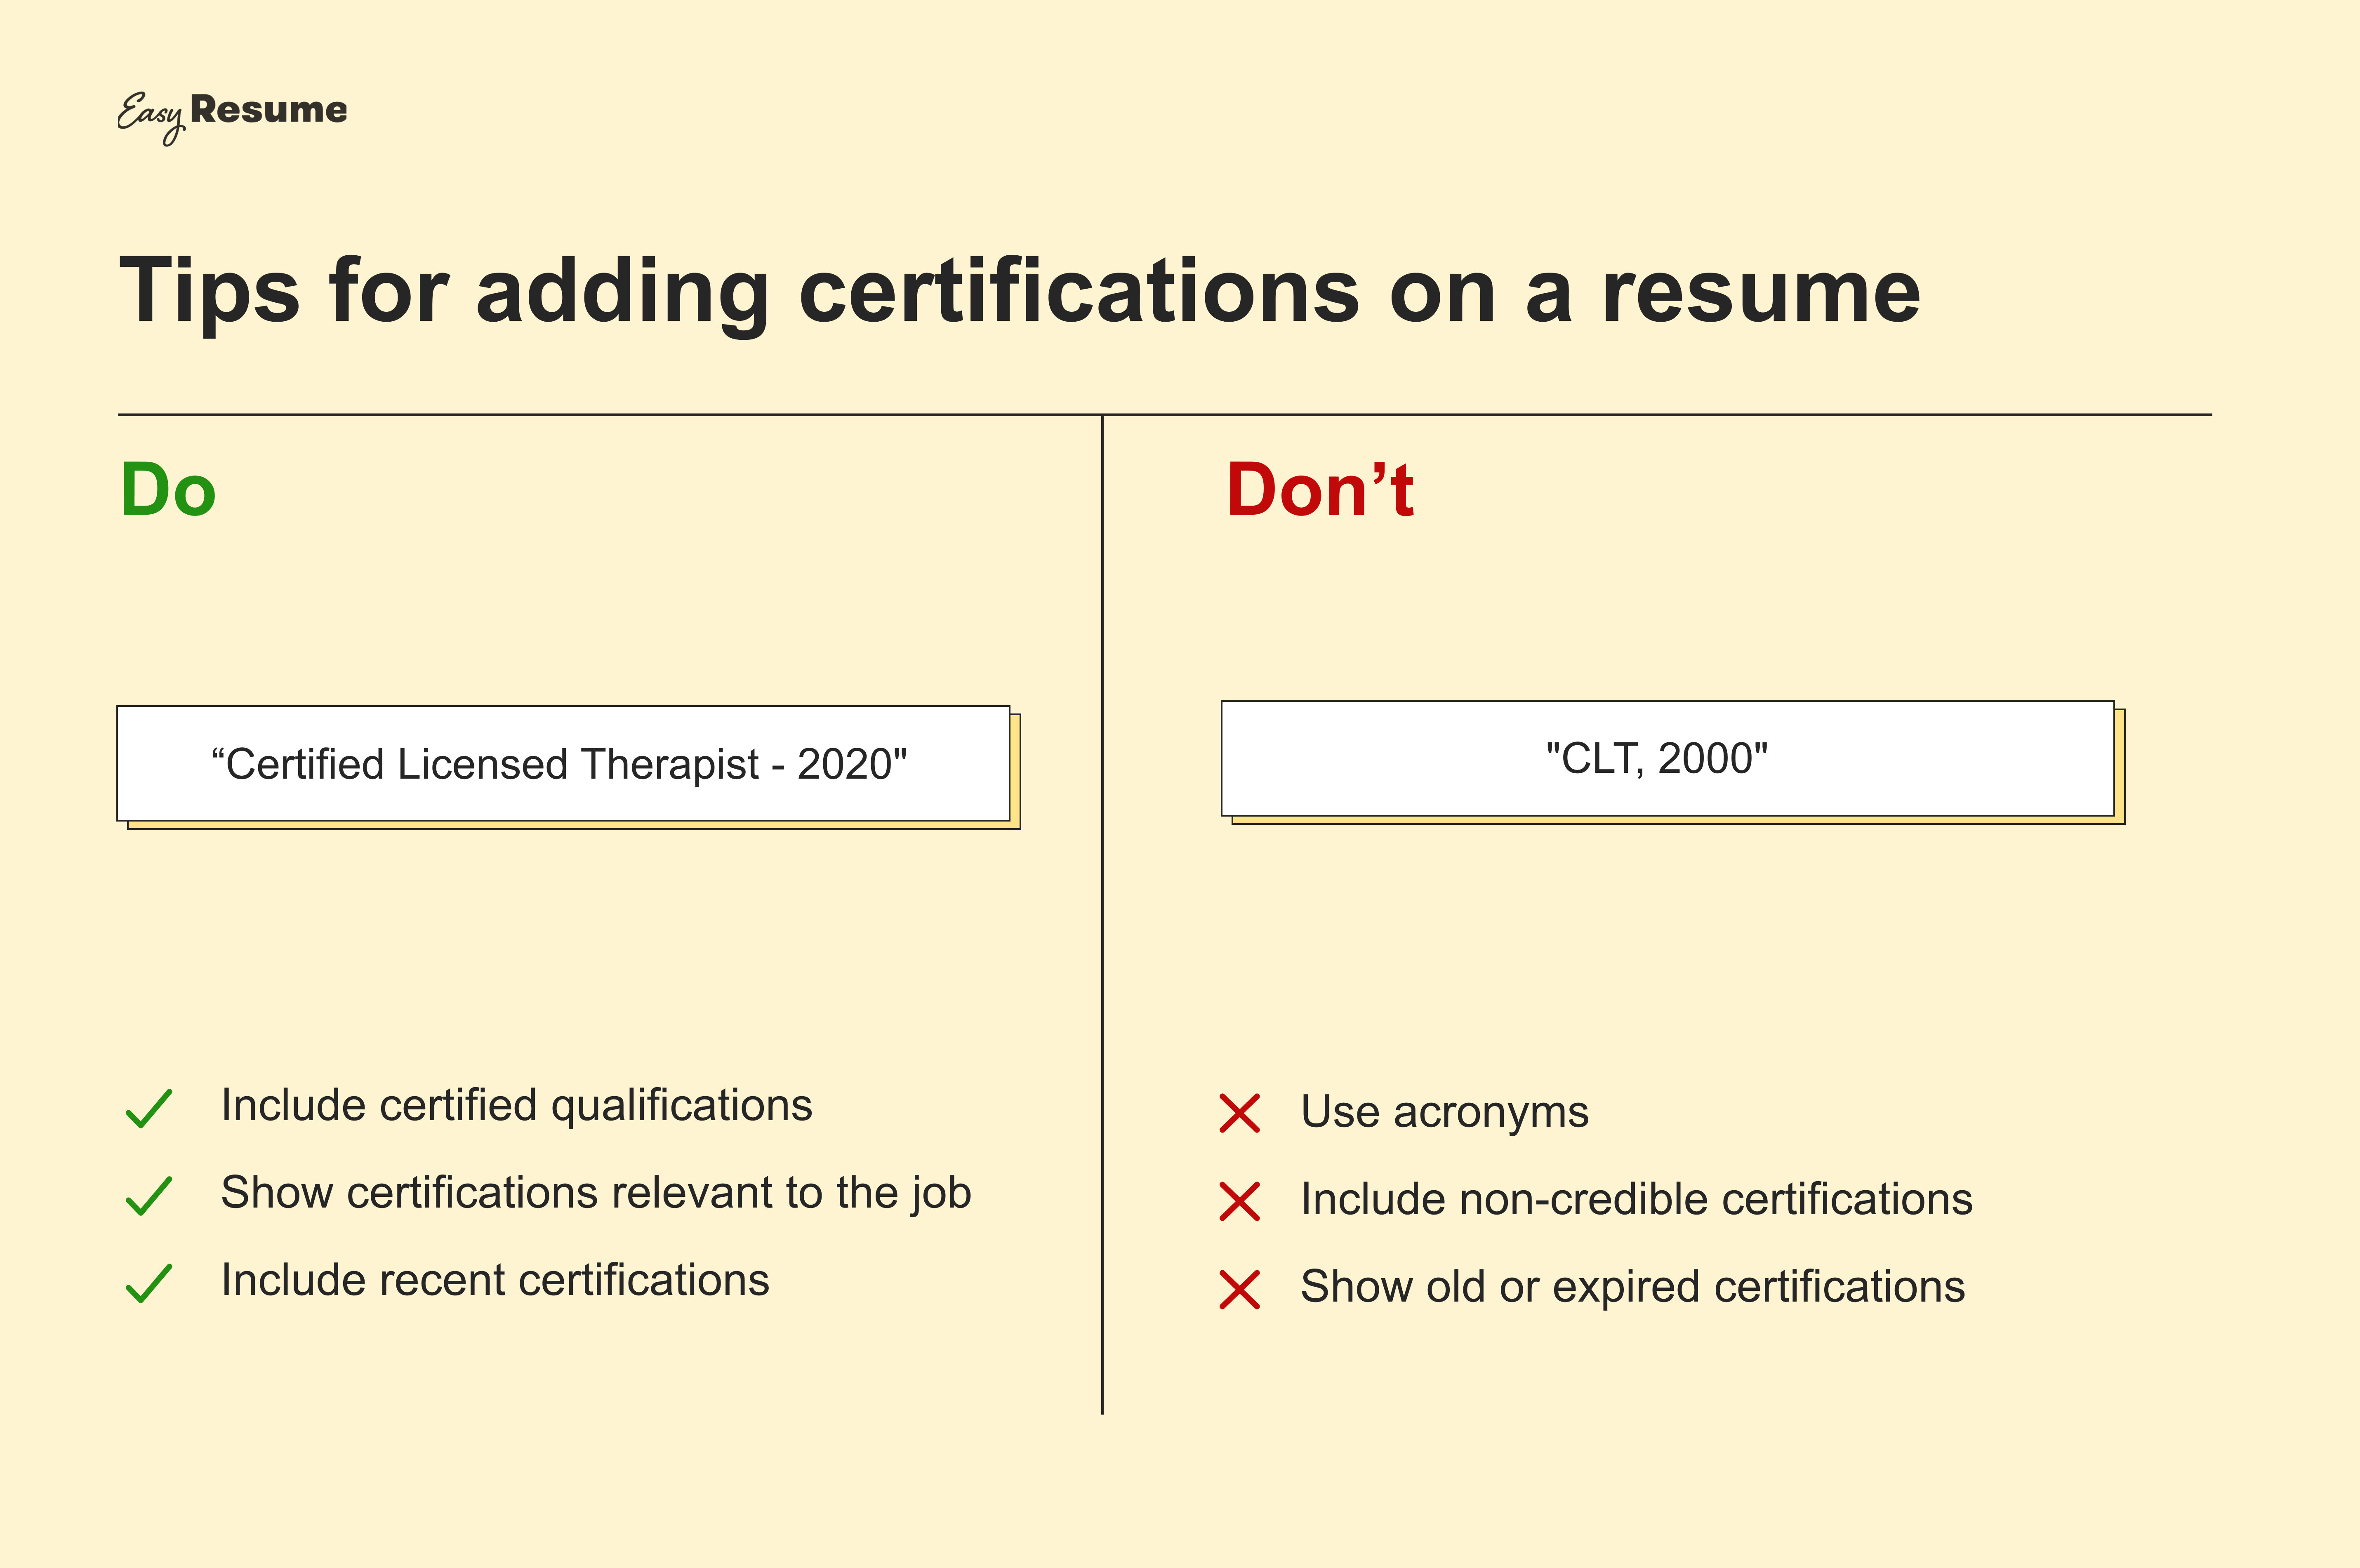 Tips for adding certifications to a resume